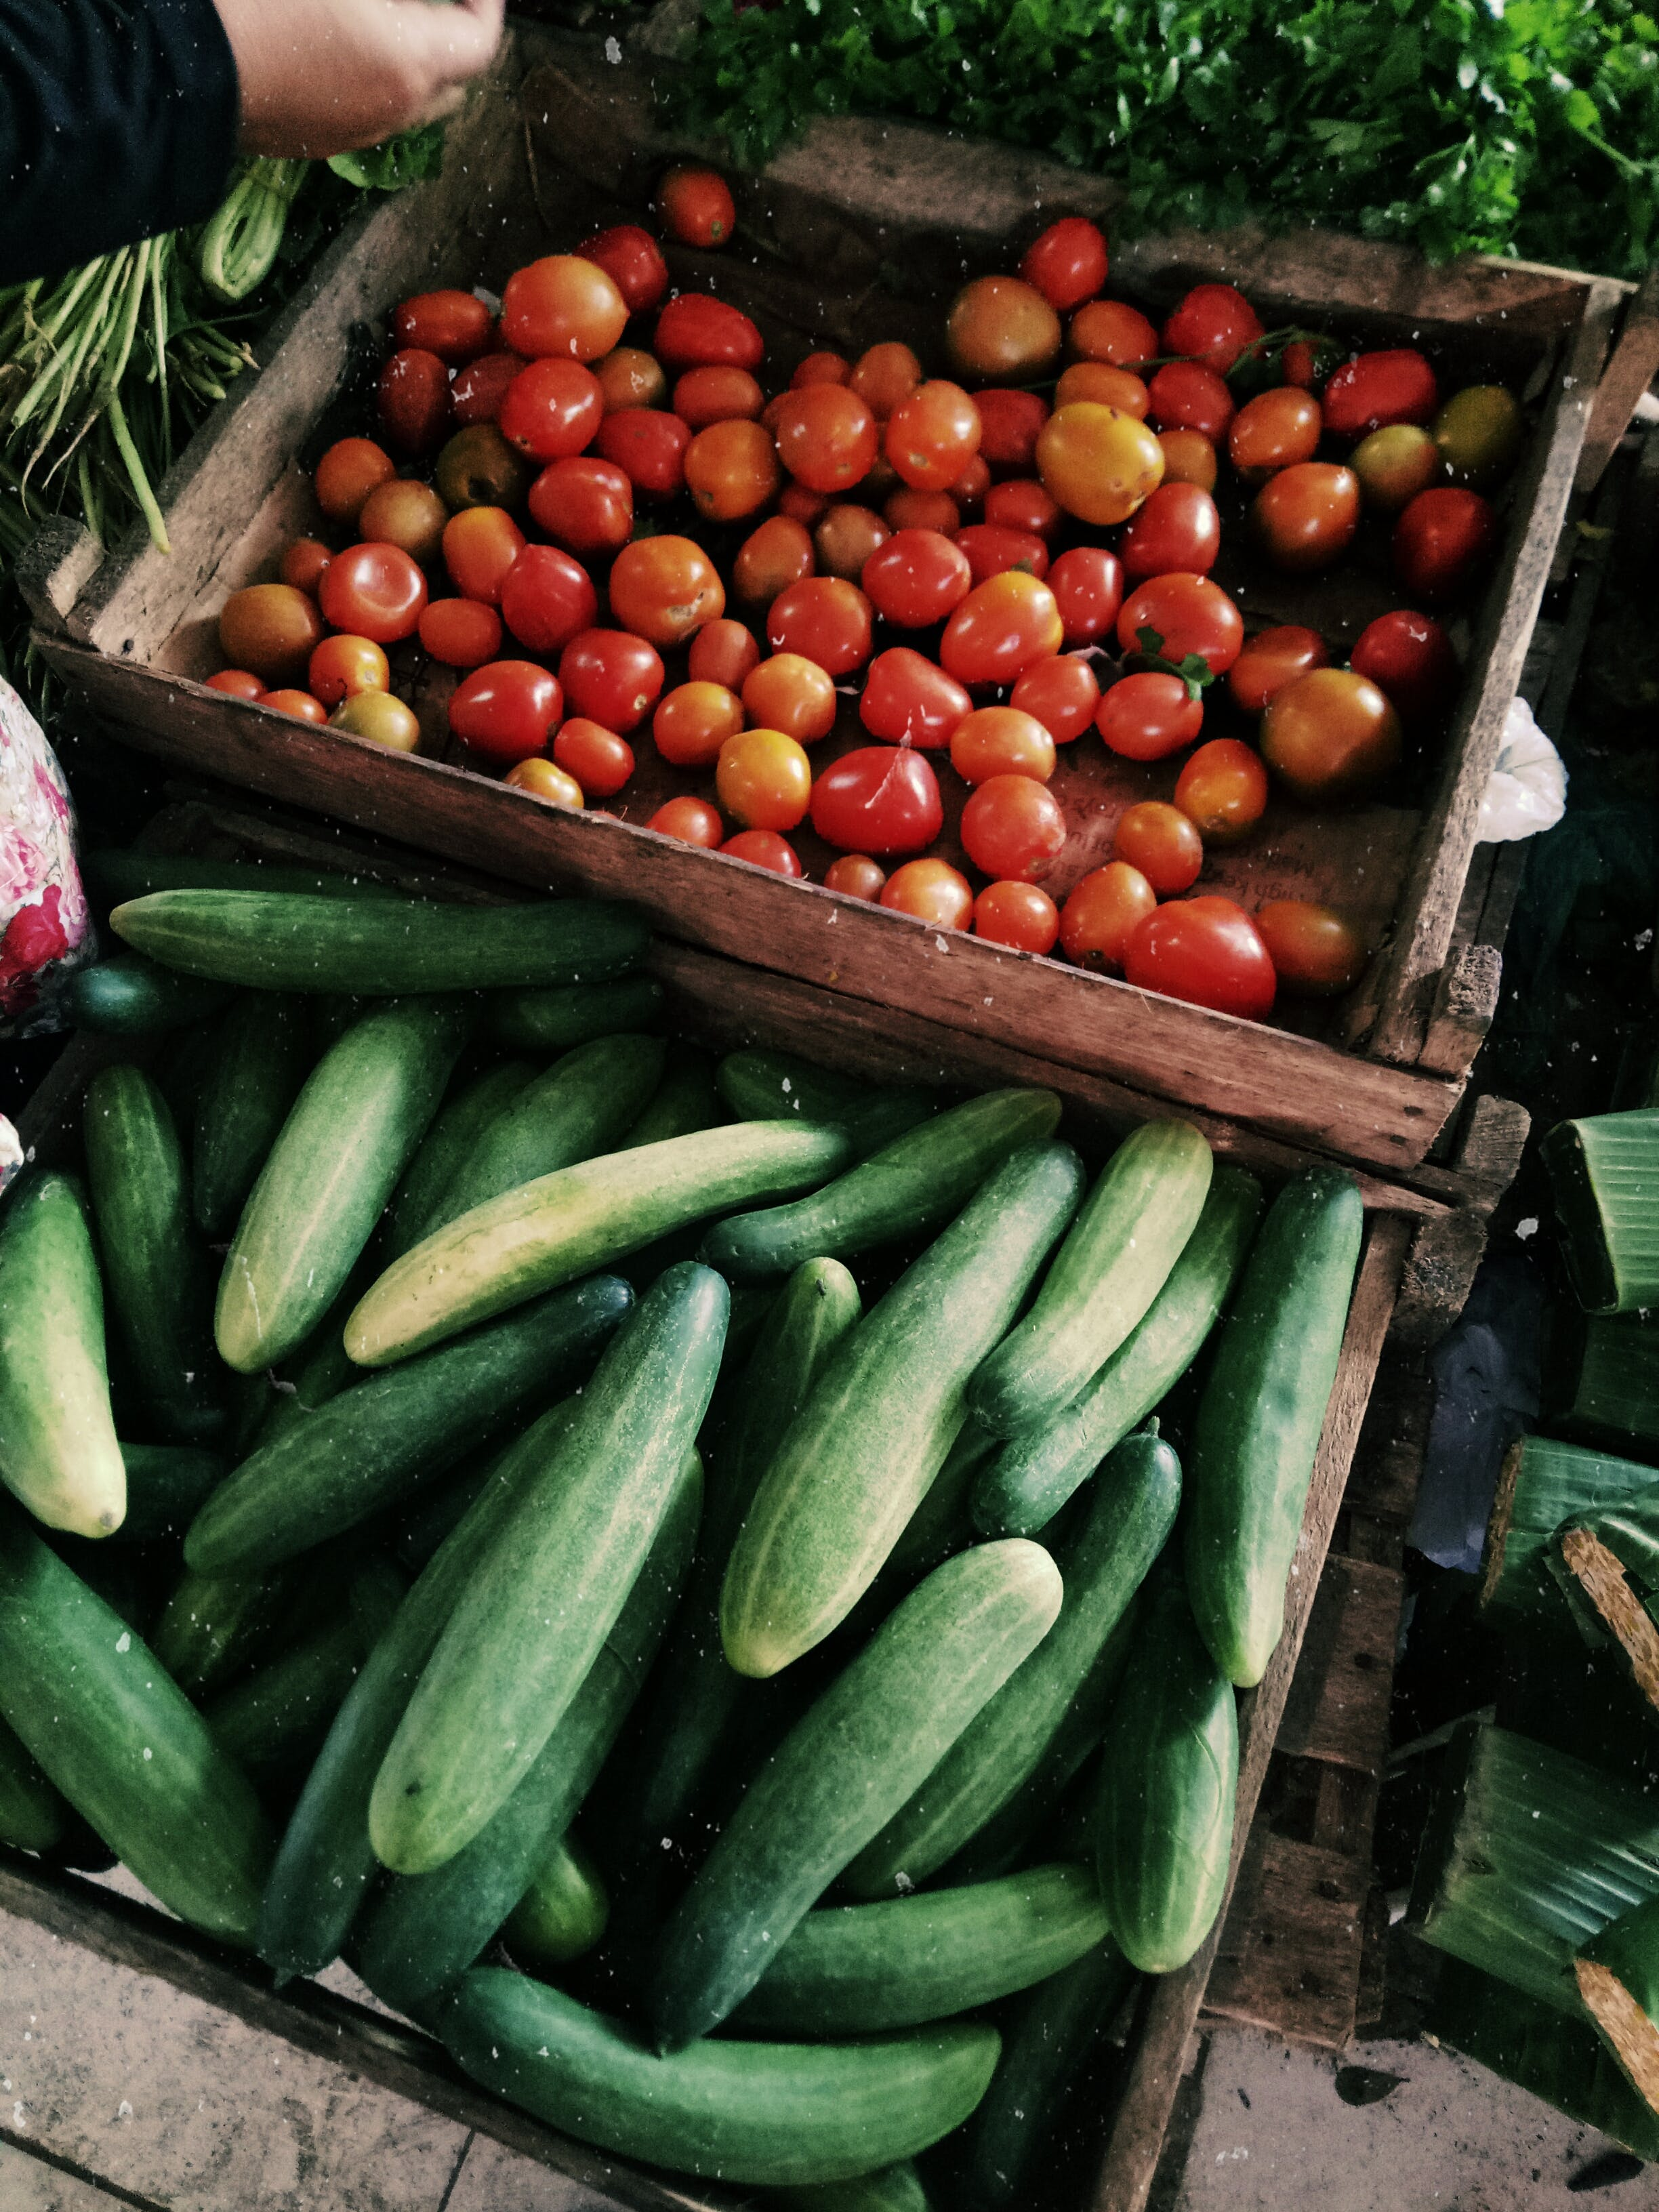 Photo of Cucumbers and Tomatoes in Wooden Crates